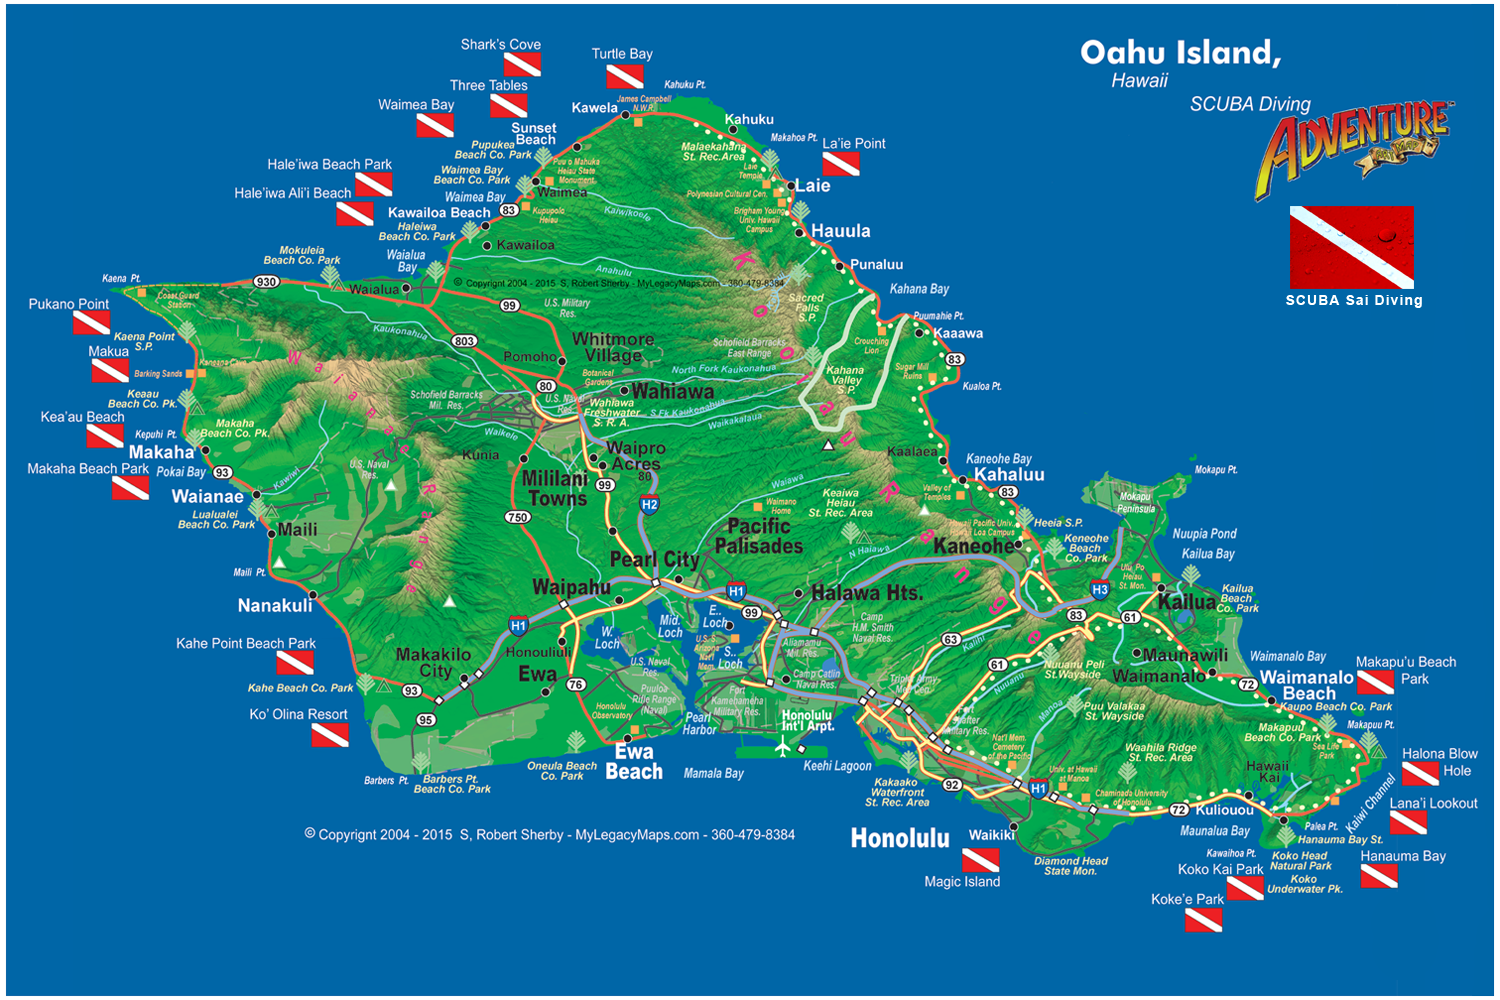 Oahu SCUBA Adventure Map